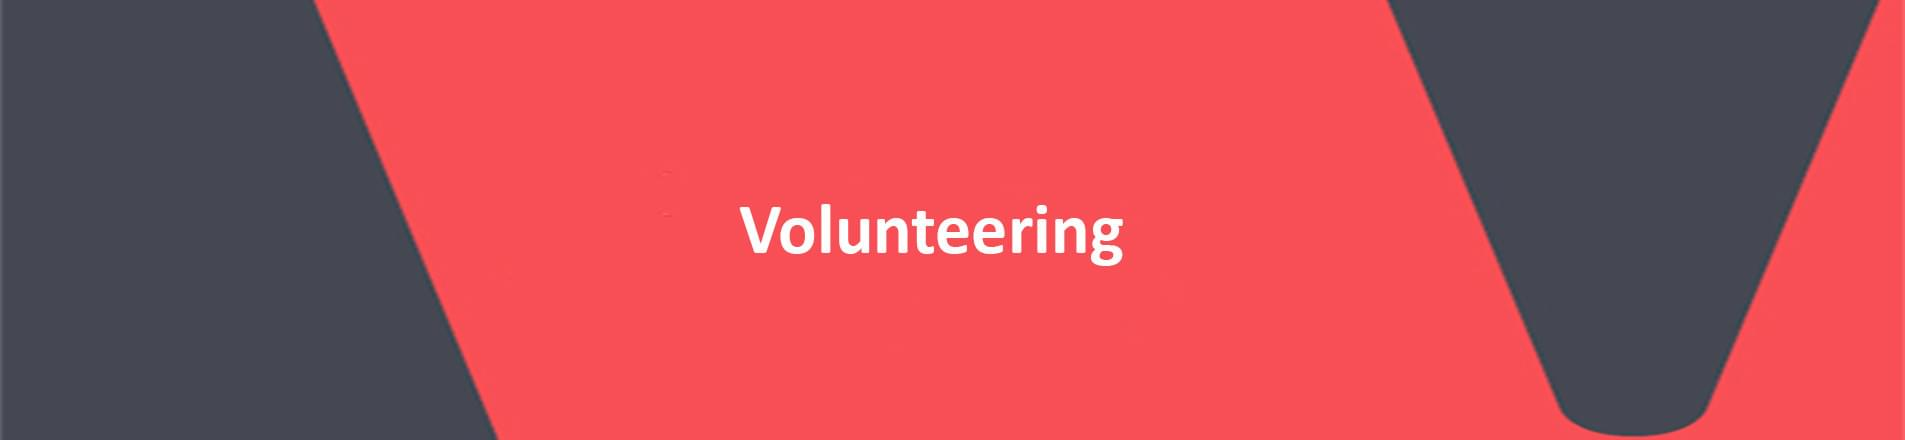 red text with white banner reading volunteering